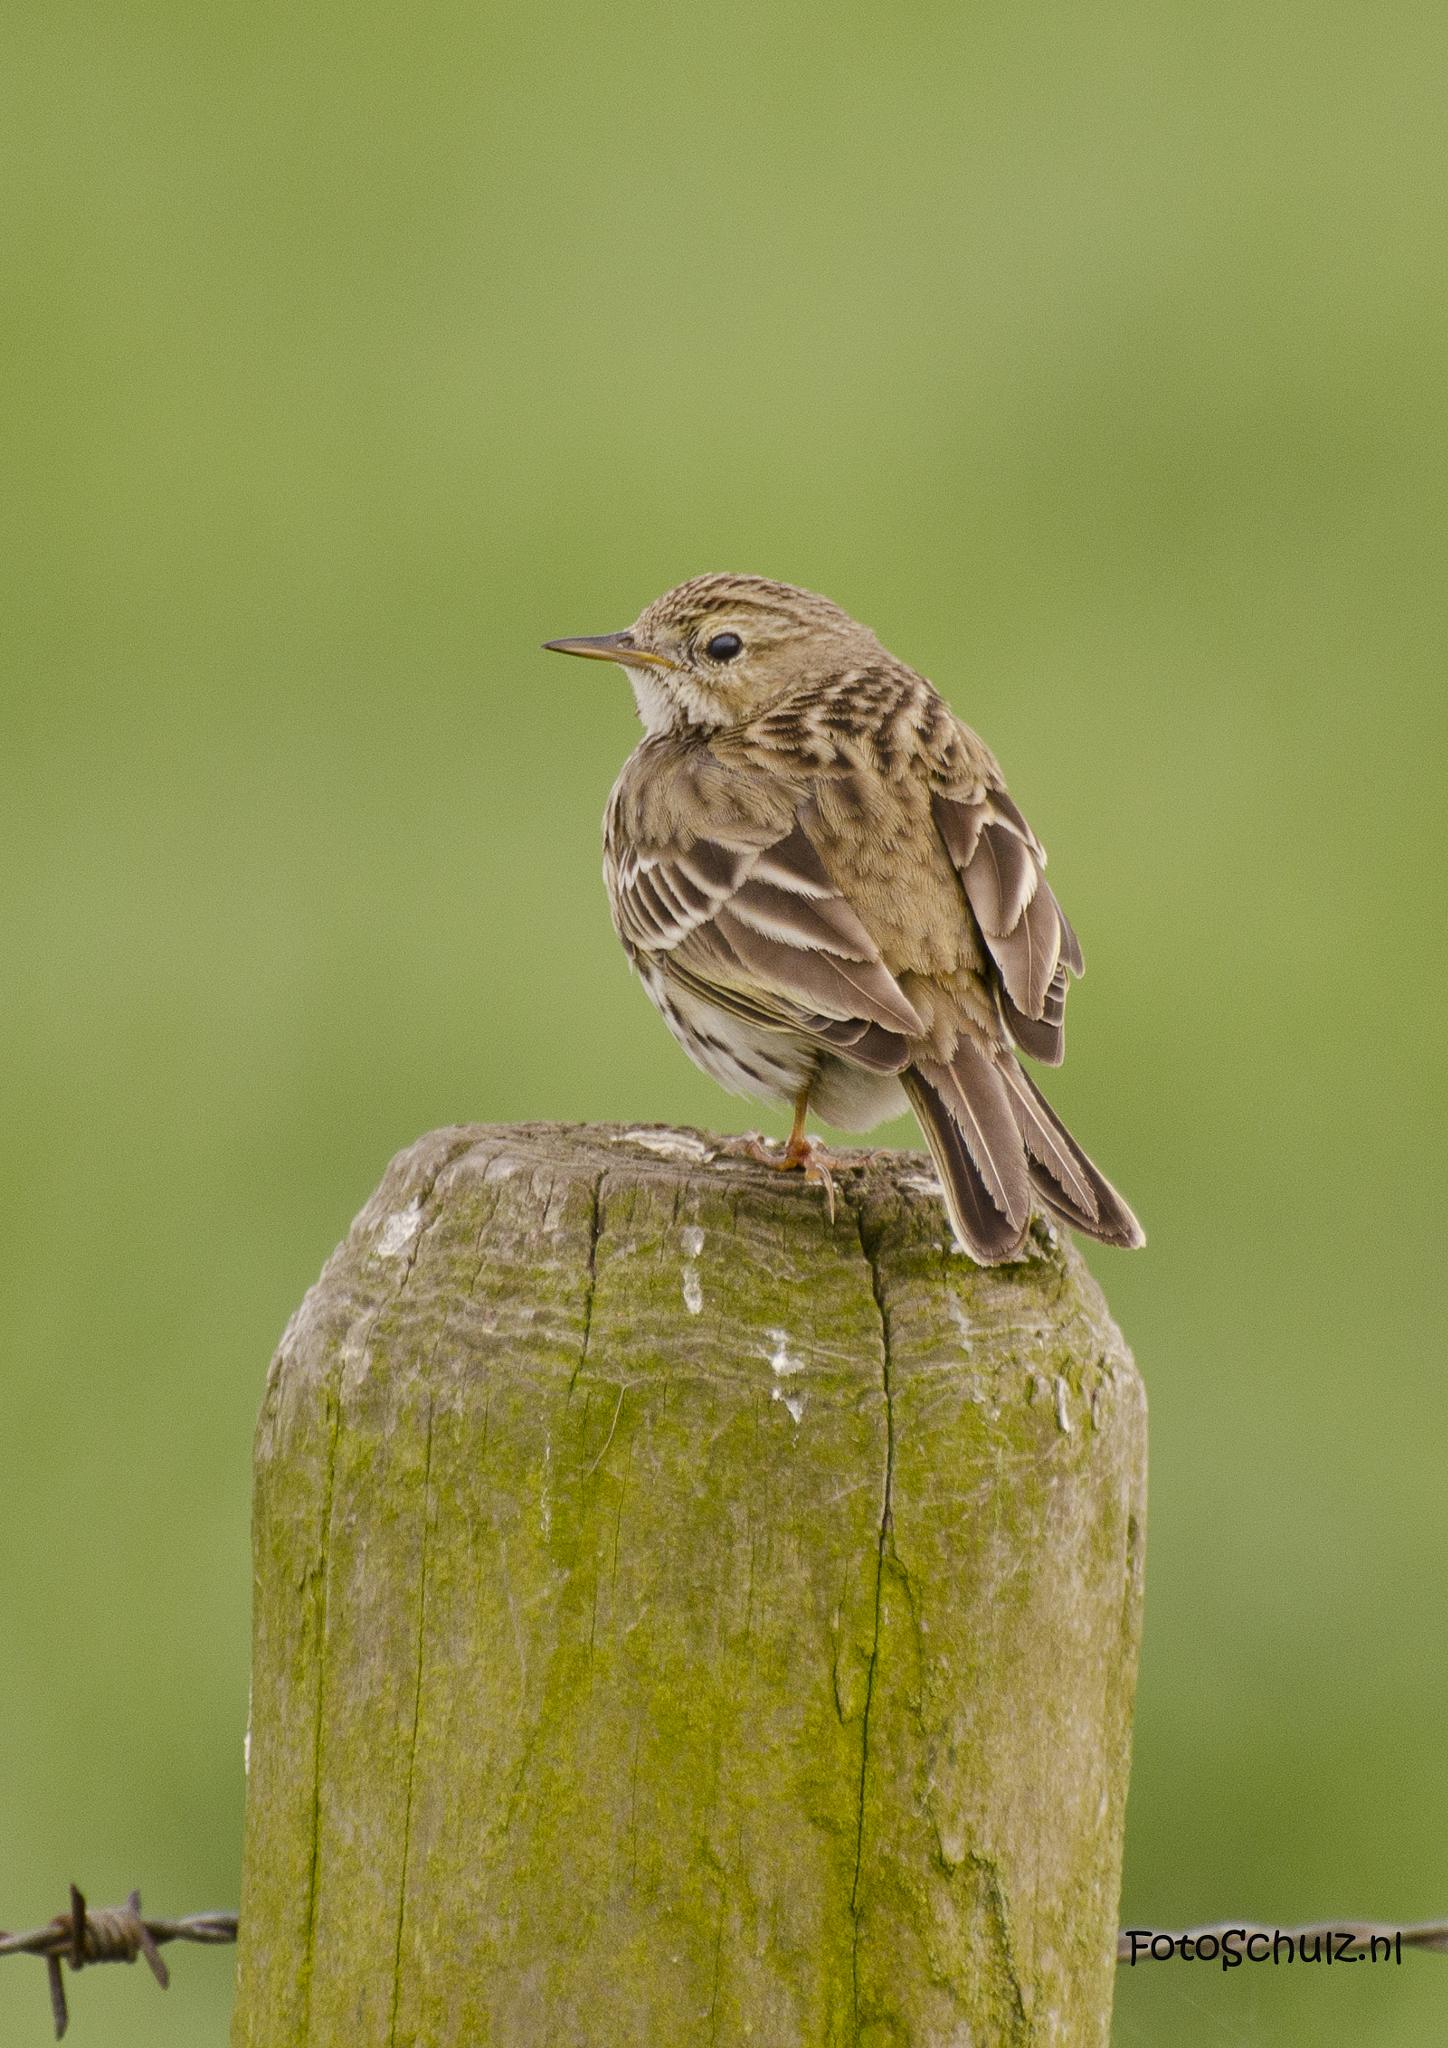 Meadow pipit by helga.schulz.92